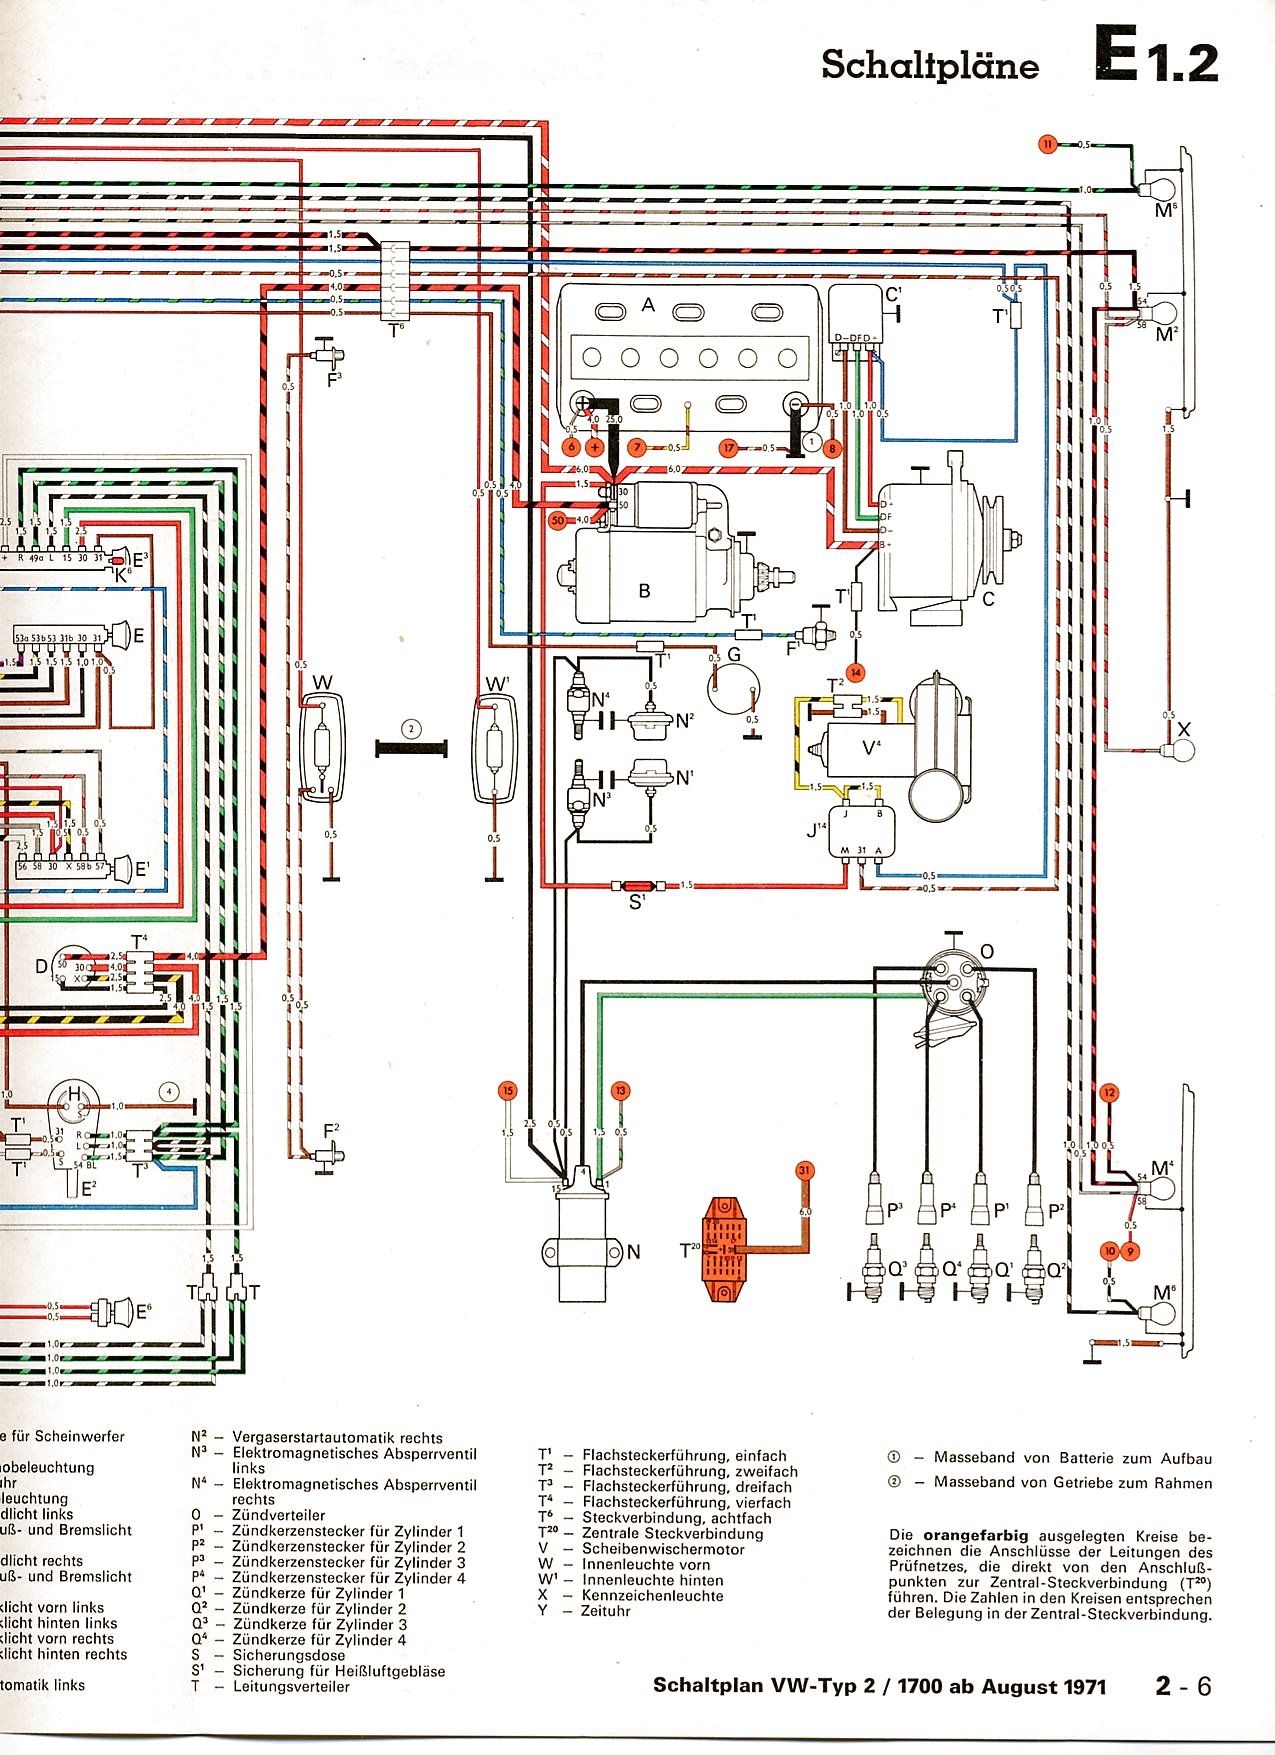 Stupendous Wiring Diagram Together With 73 Vw Wiring Diagrams Moreover 1970 Wiring Digital Resources Funapmognl